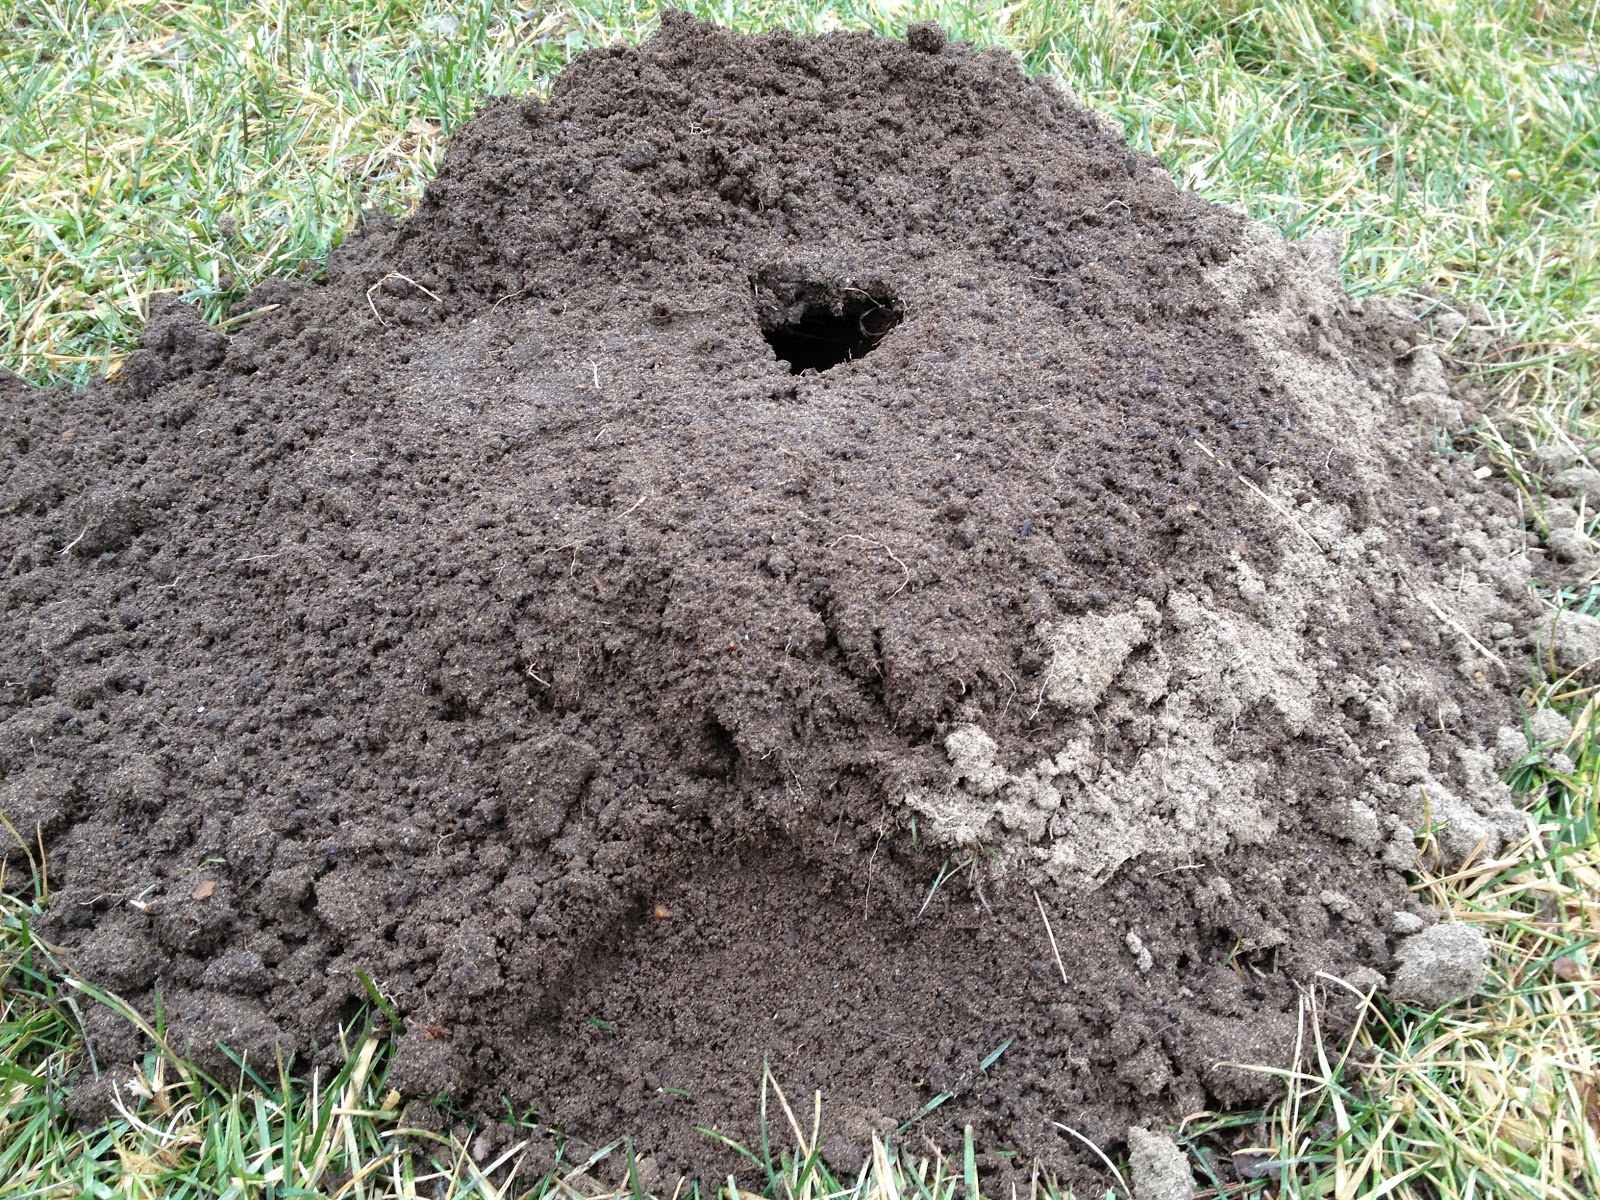 How to get rid of ground moles - It S A Pity That Most People Want To Get Rid Of Them Any Way They Can Like Beavers Moles